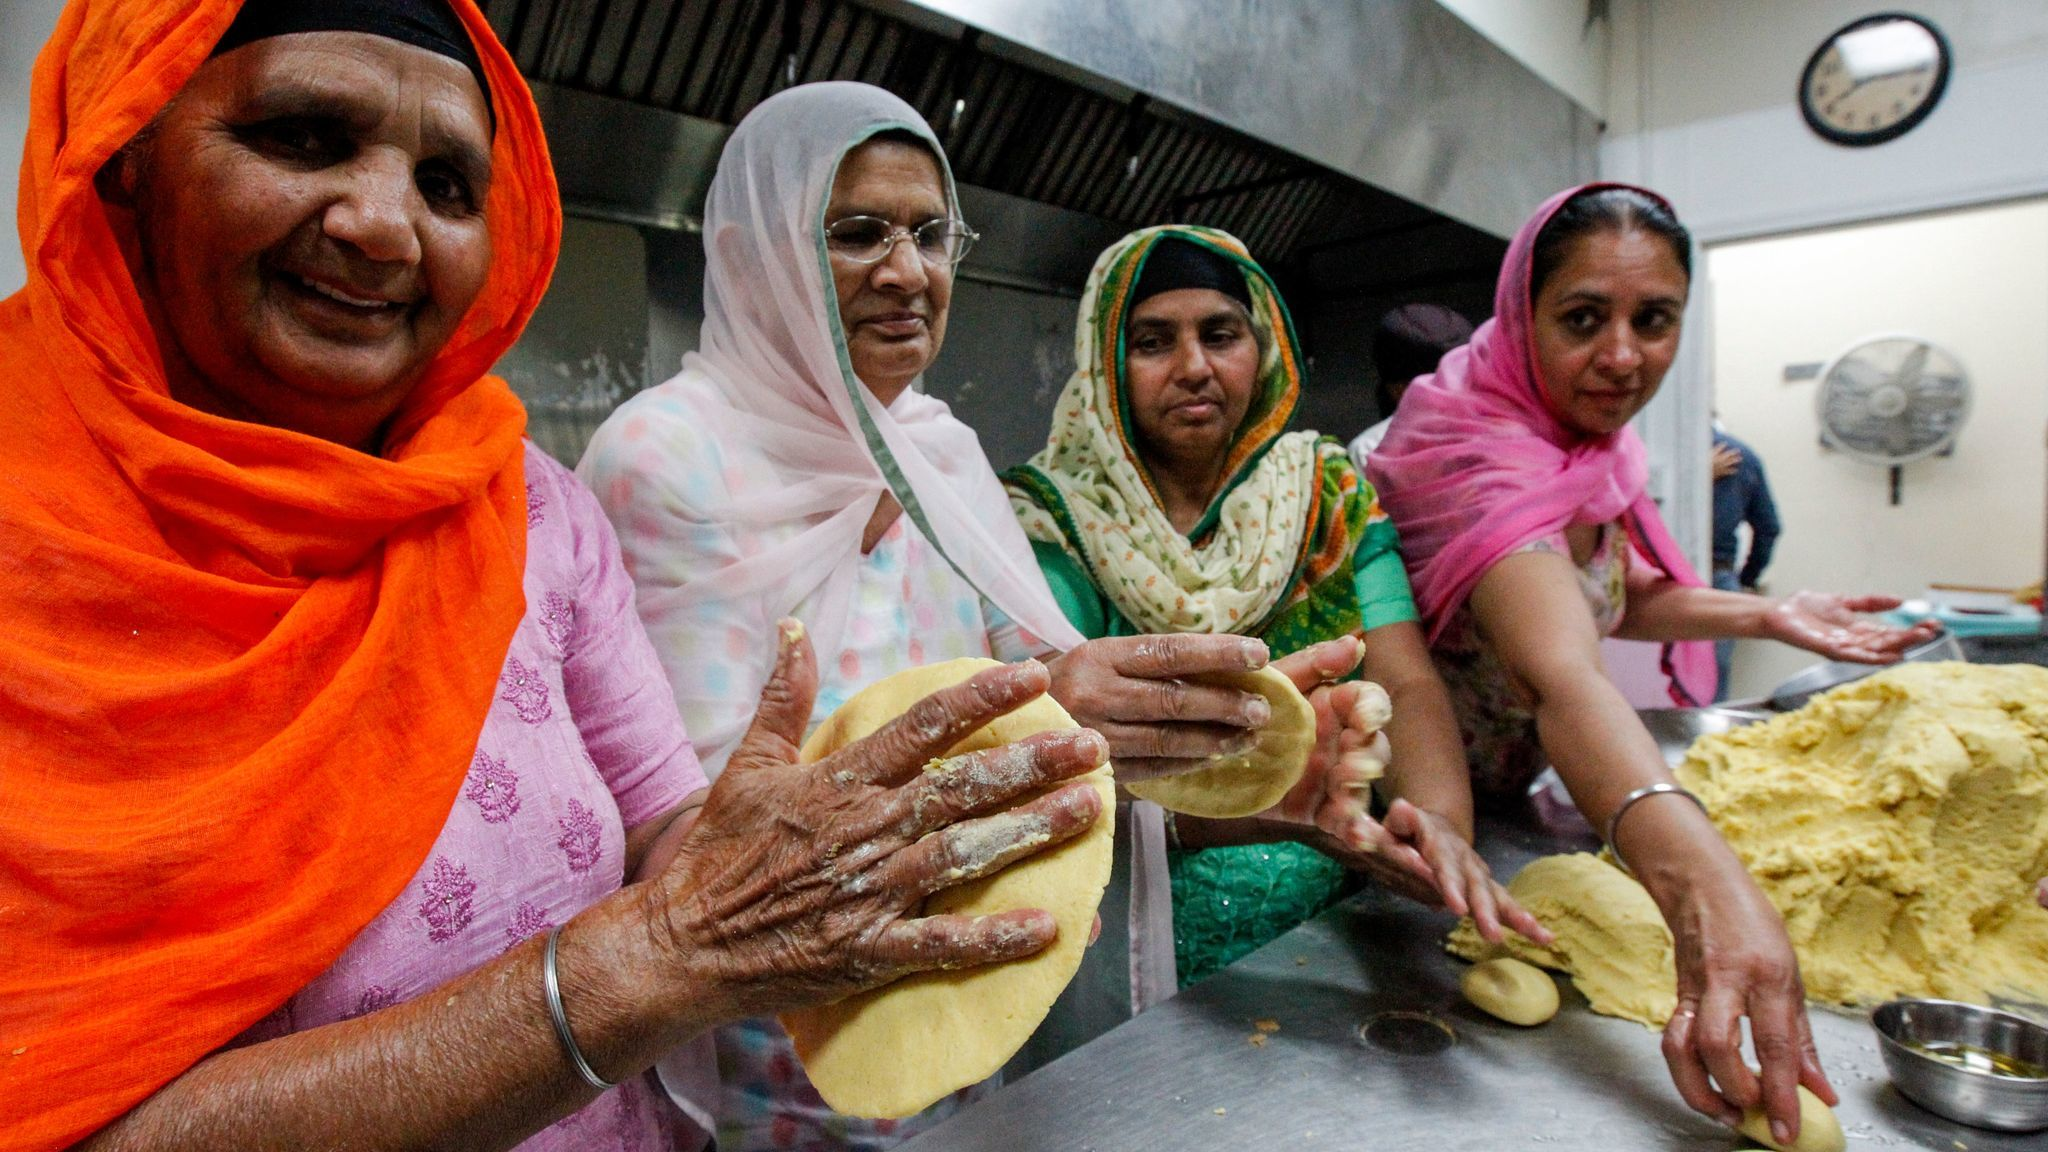 Sikh women prepare bread during Nagar Kirtan celebrations at Gurdwara Guru Angad Darbar in Bakersfield.